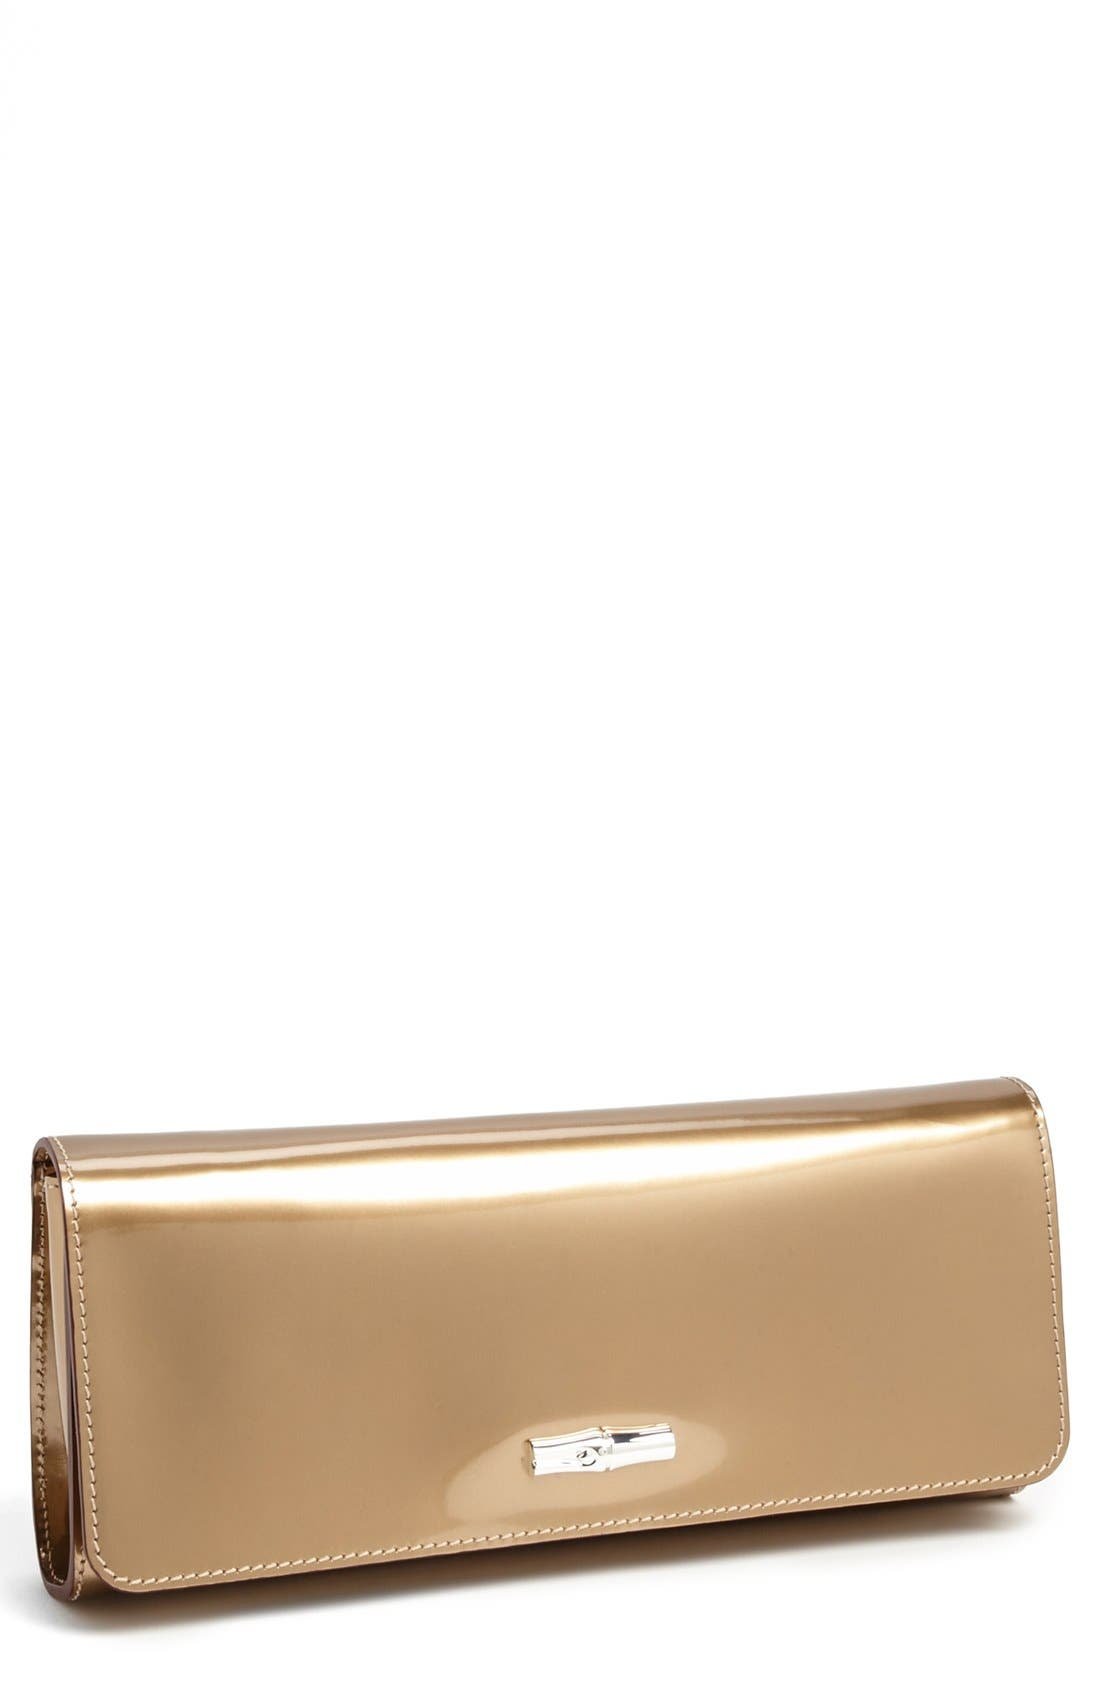 Main Image - Longchamp 'Roseau Box' Clutch